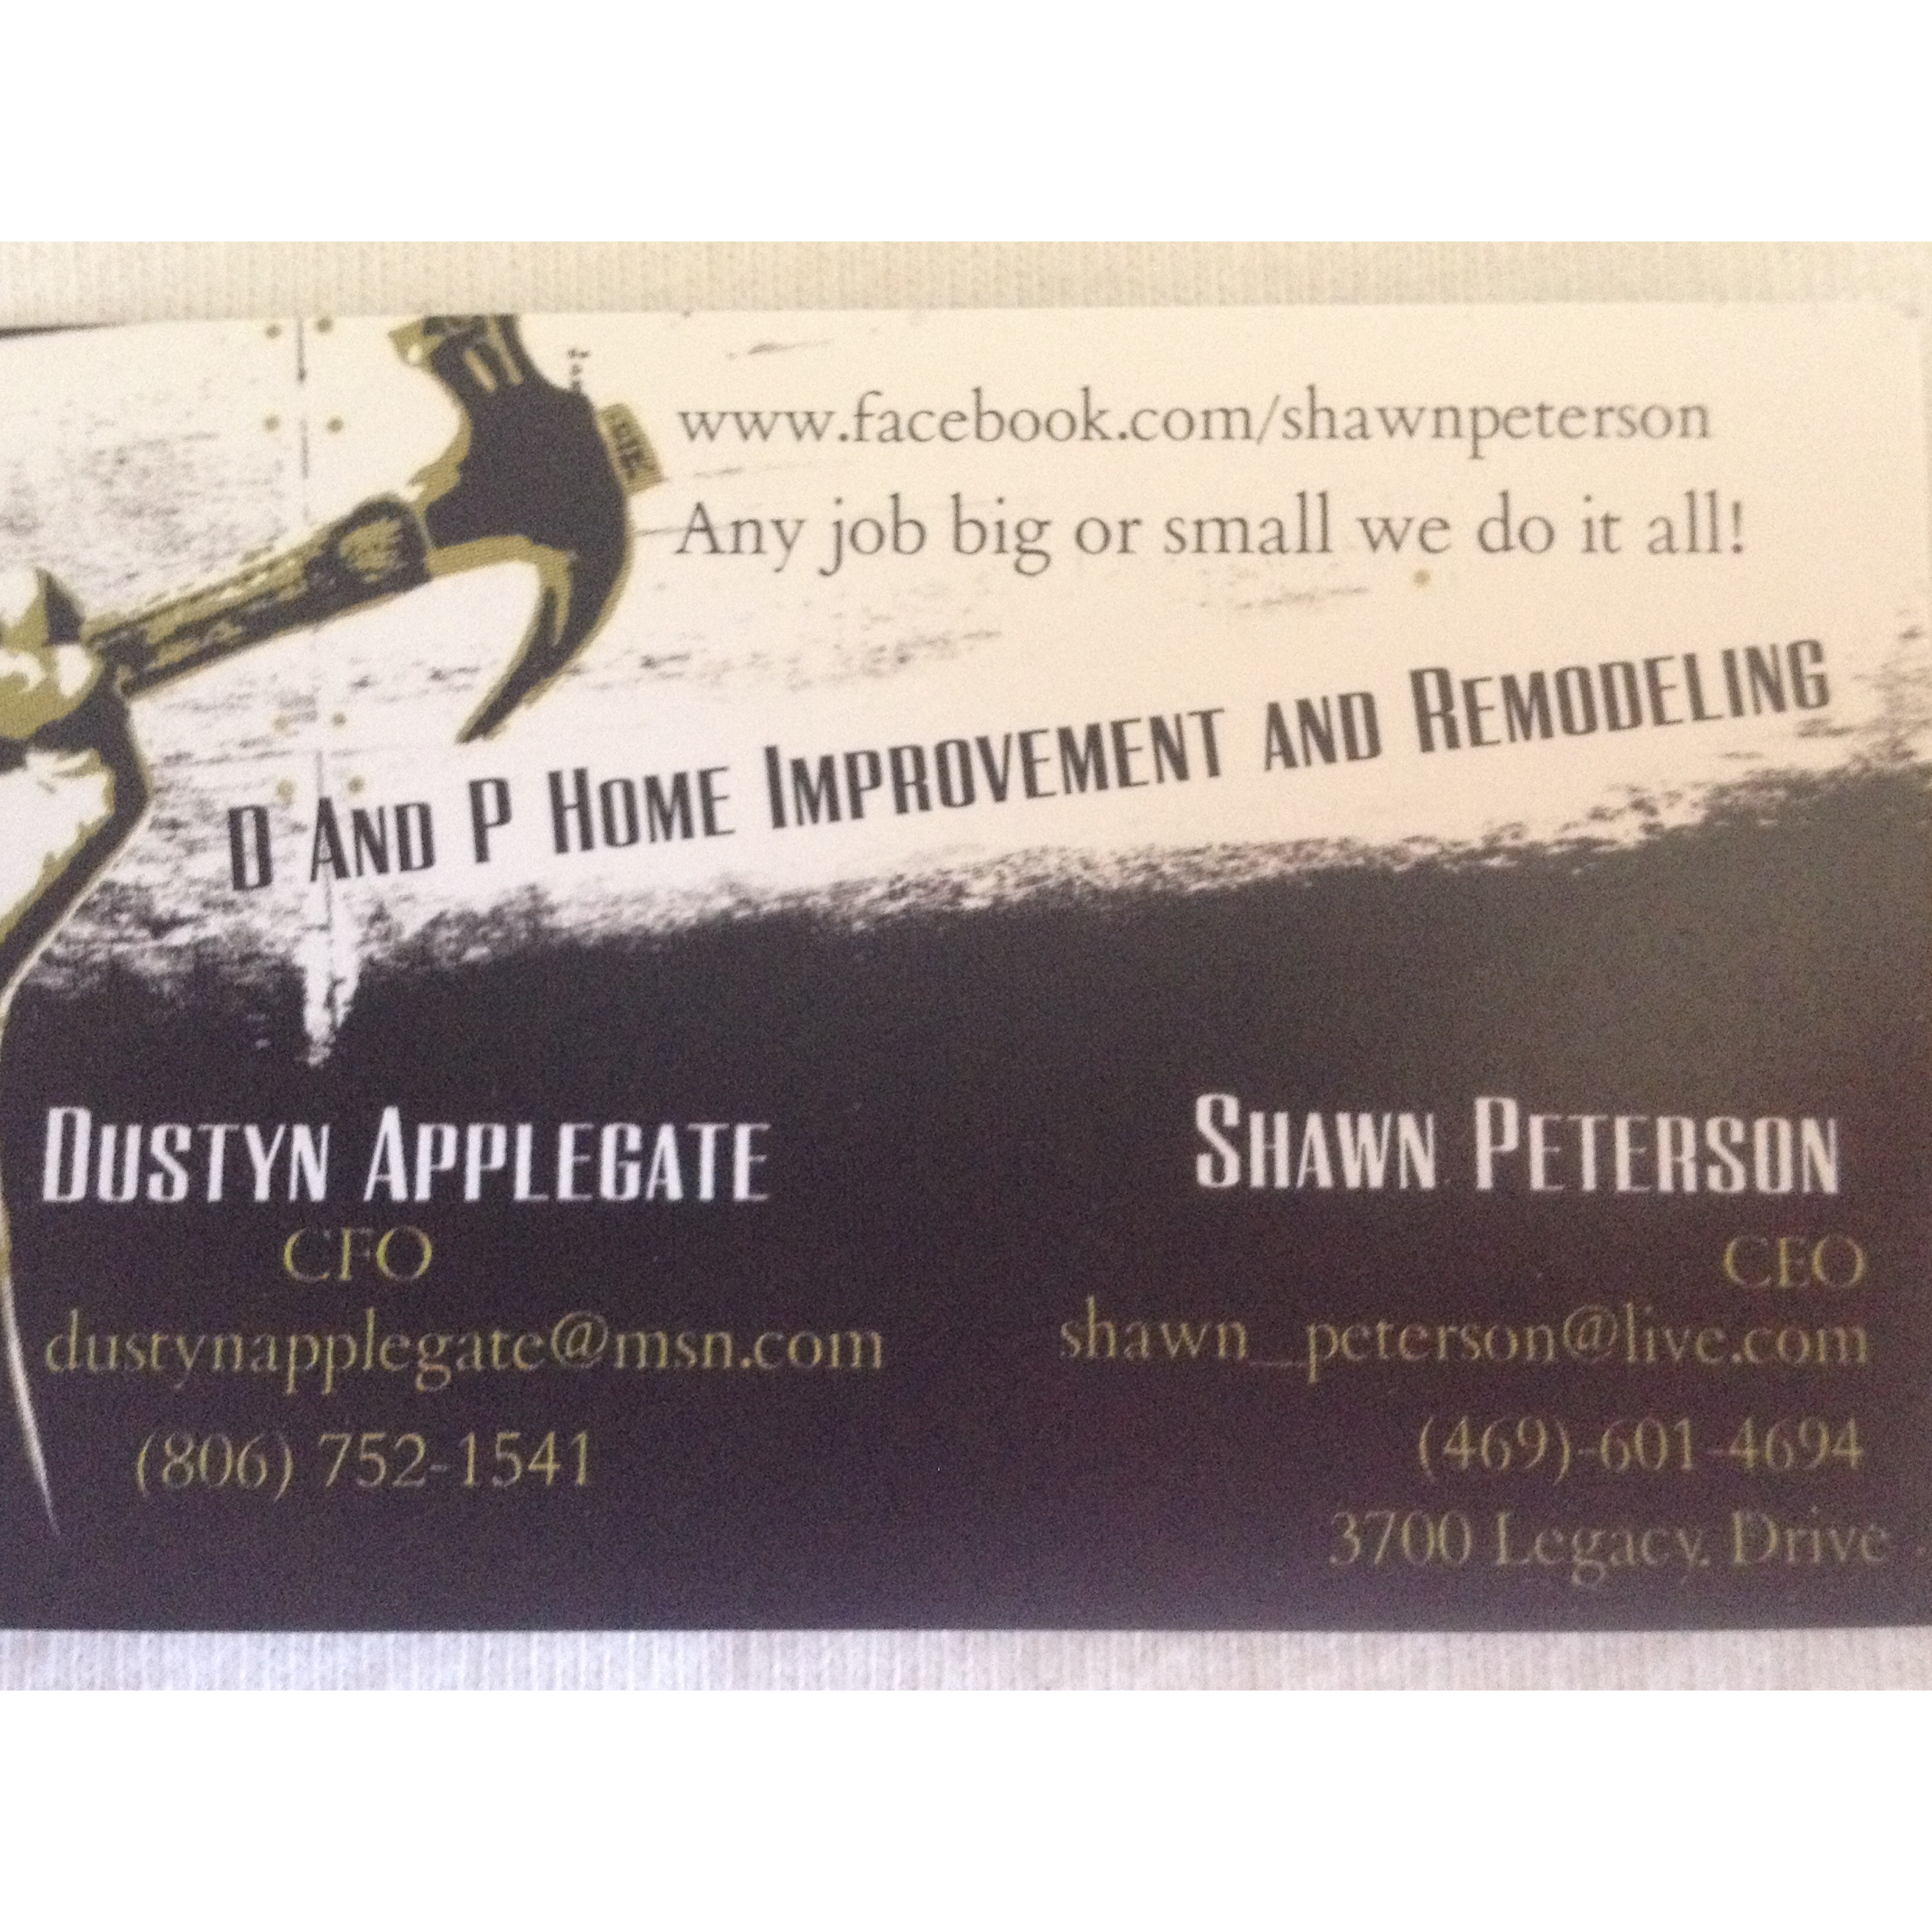 D & P Home Improvement and Remodeling